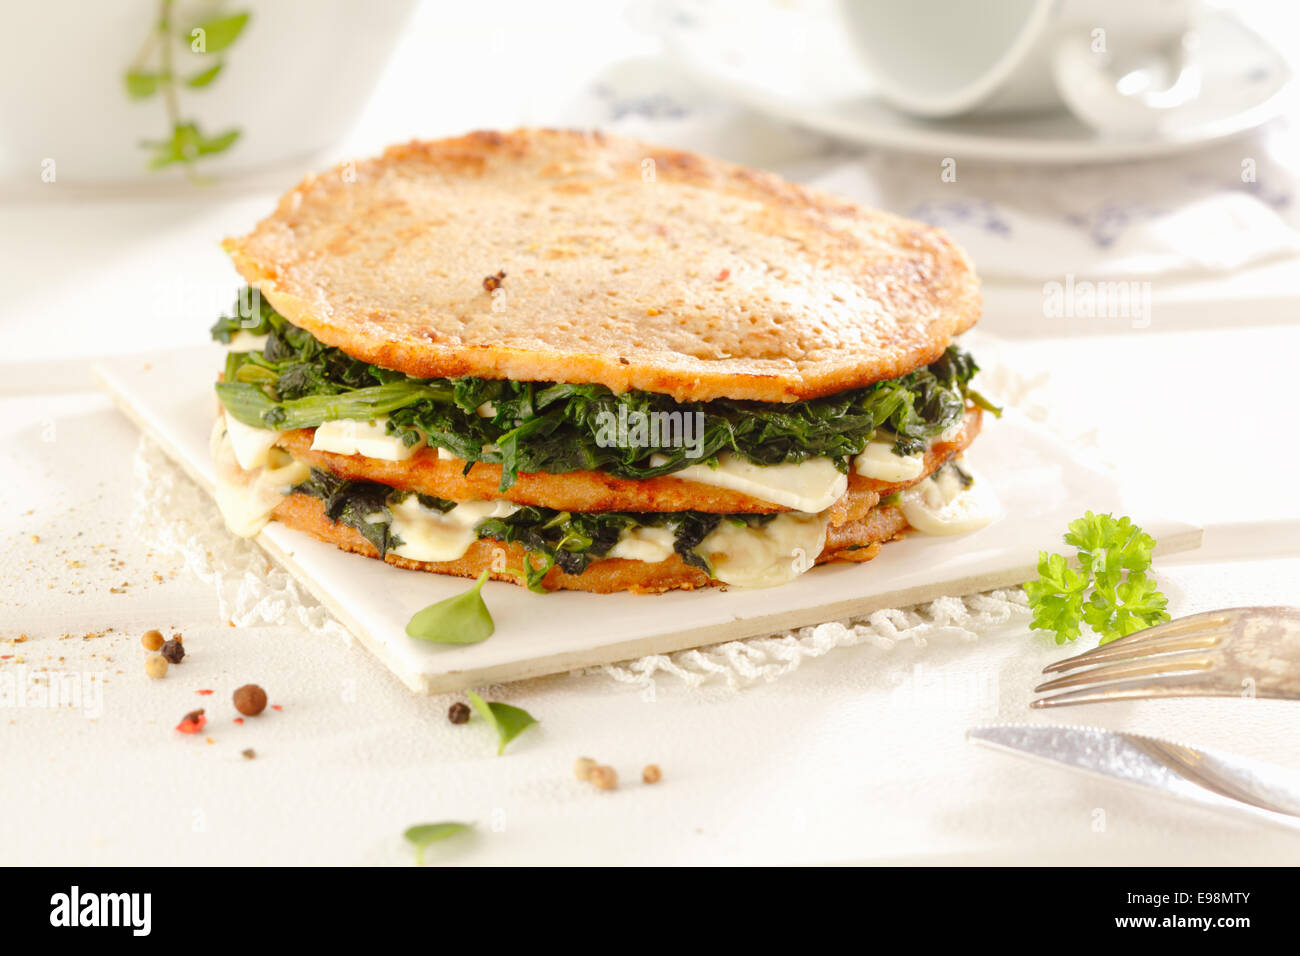 Delicios snack or light luncheon of three wholewheat pancakes stacked with a filling of cheese, spinach and greens. - Stock Image